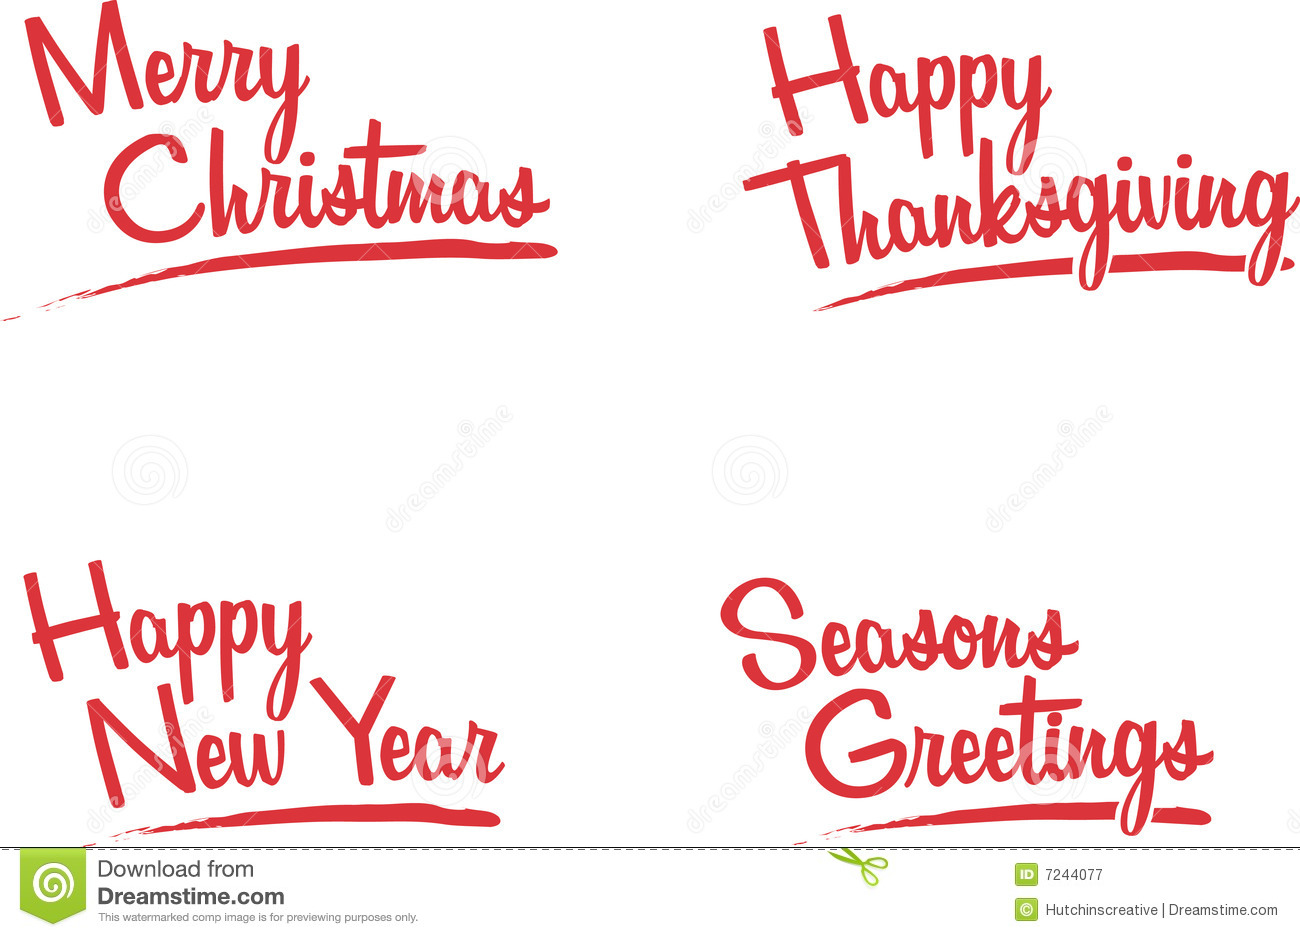 Season greetings words gidiyedformapolitica season greetings words m4hsunfo